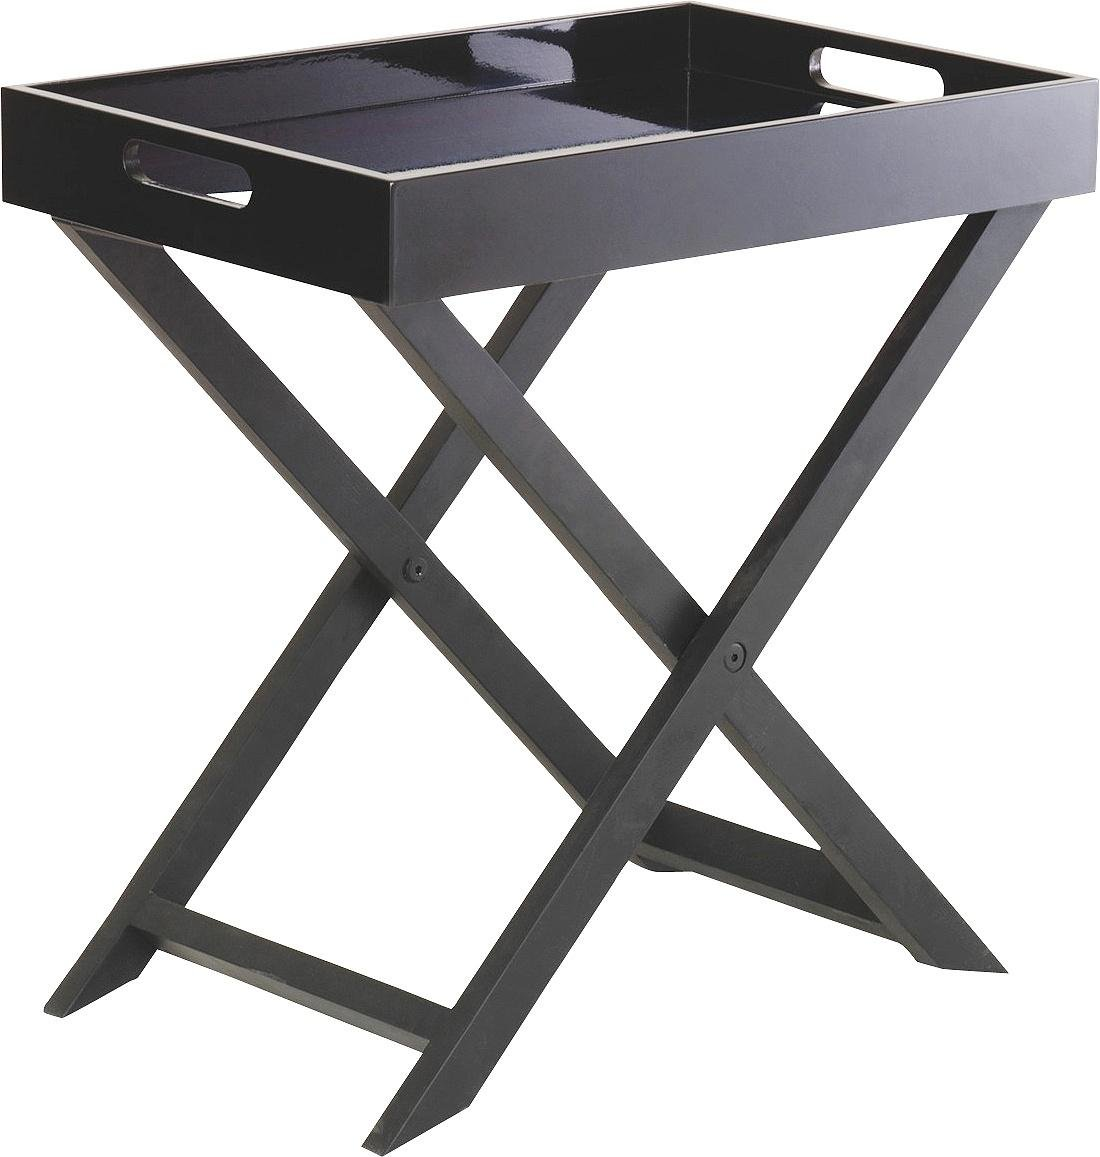 Habitat Oken Small Occasional Table - Black